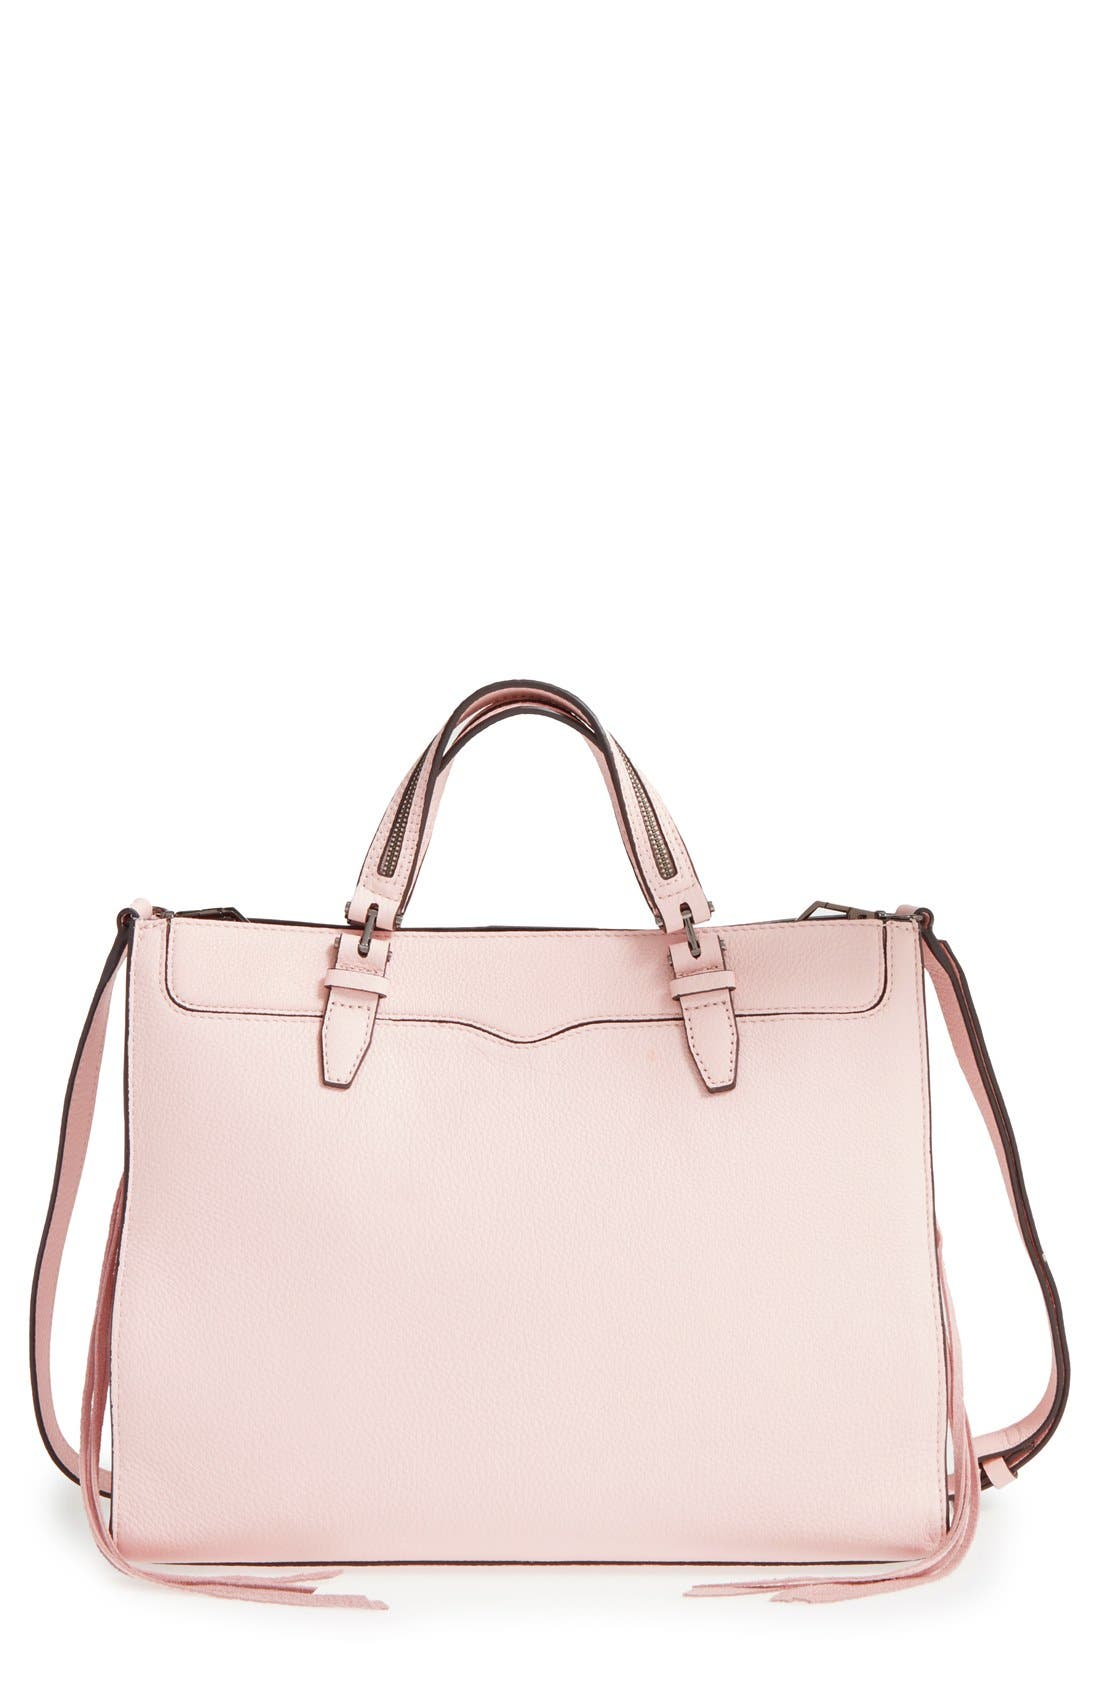 REBECCA MINKOFF 'Blair' Tote, Main, color, 650